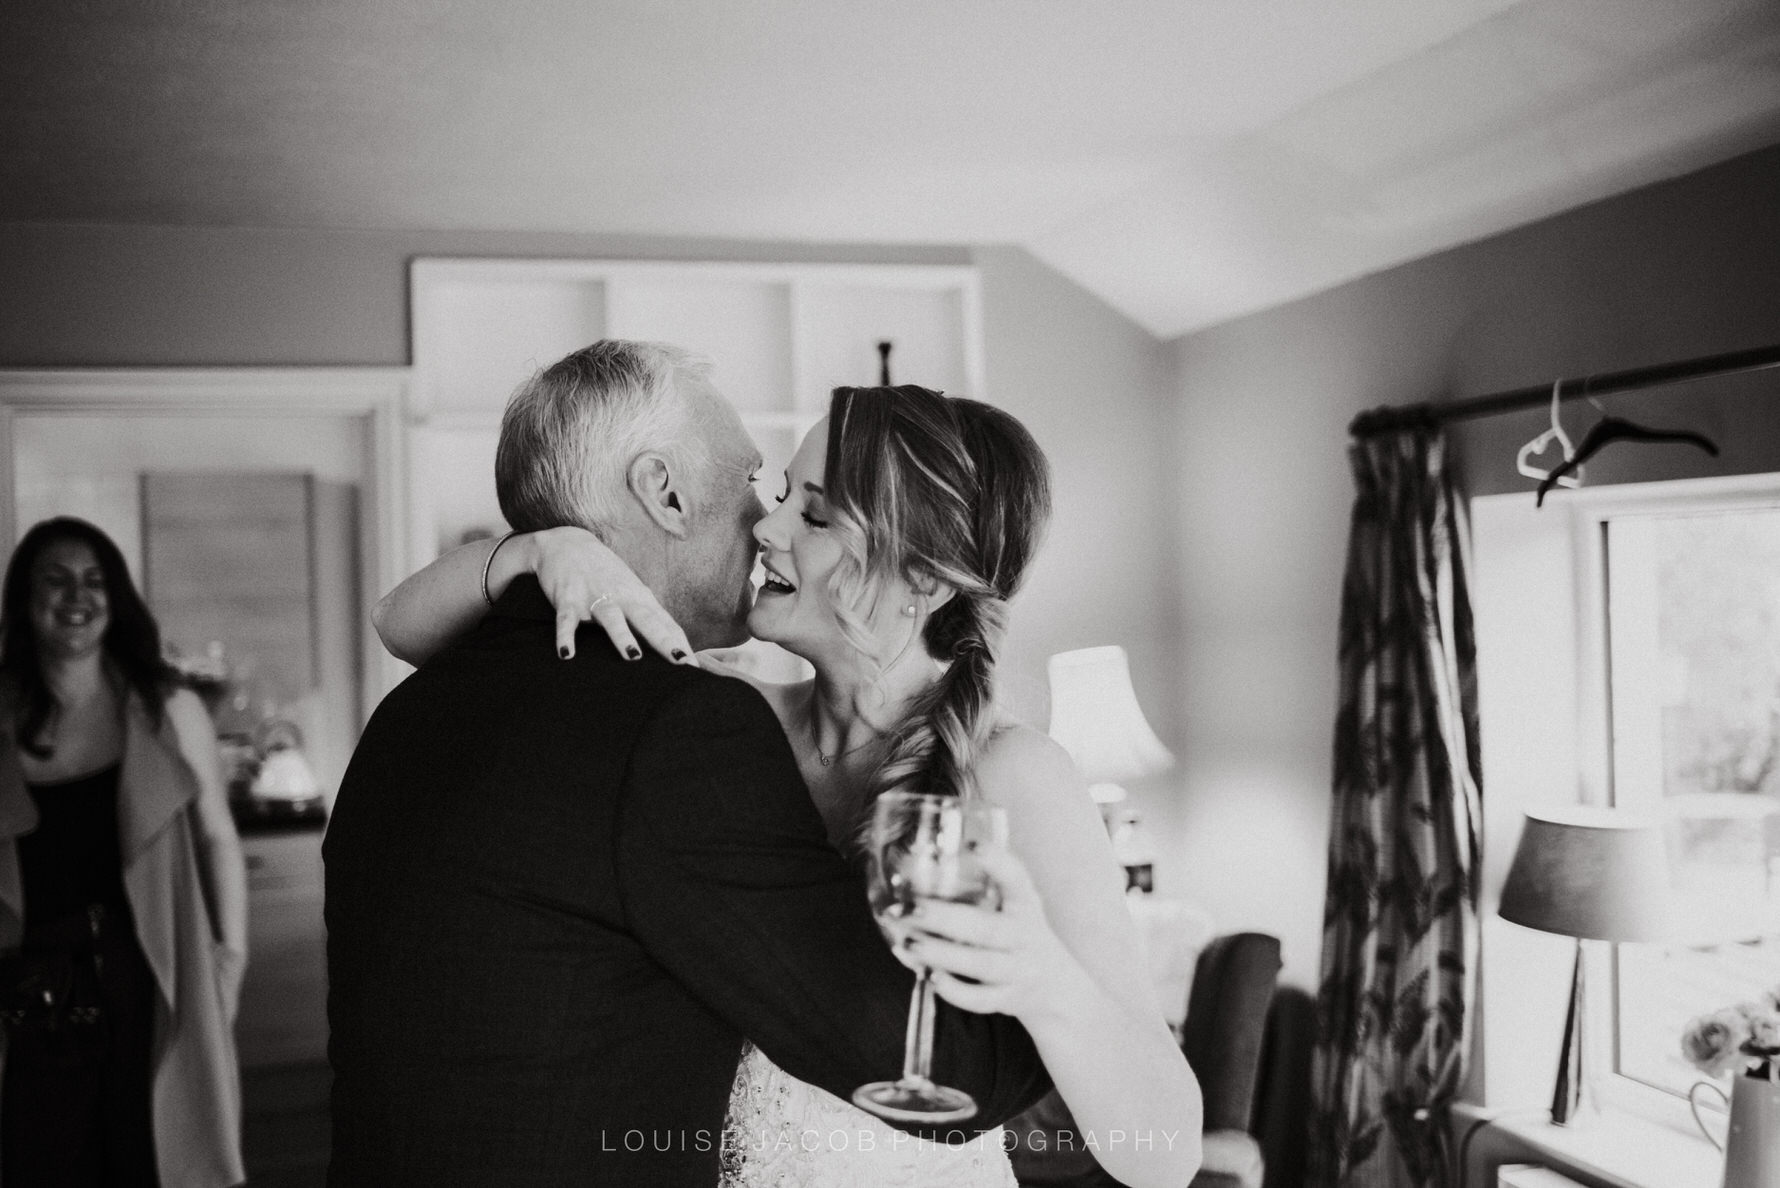 Cheshire Unposed Documentary Wedding Photography at The Red Lion and Manor, BurnsallCheshire Unposed Documentary Wedding Photography at The Red Lion and Manor, Burnsall